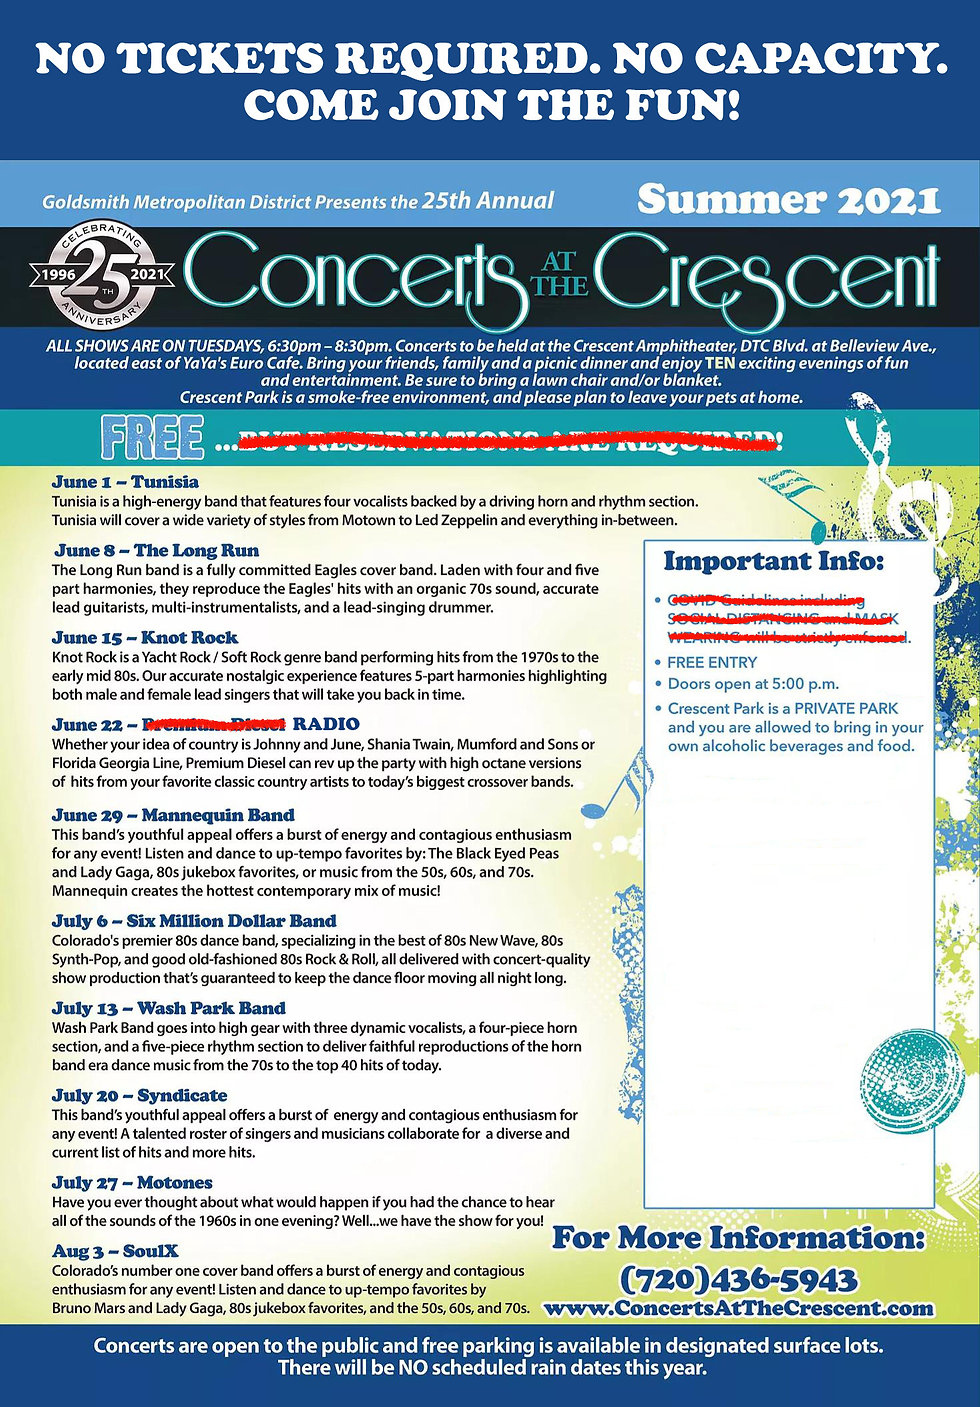 Concerts-at-the-Crescent-071421.jpg